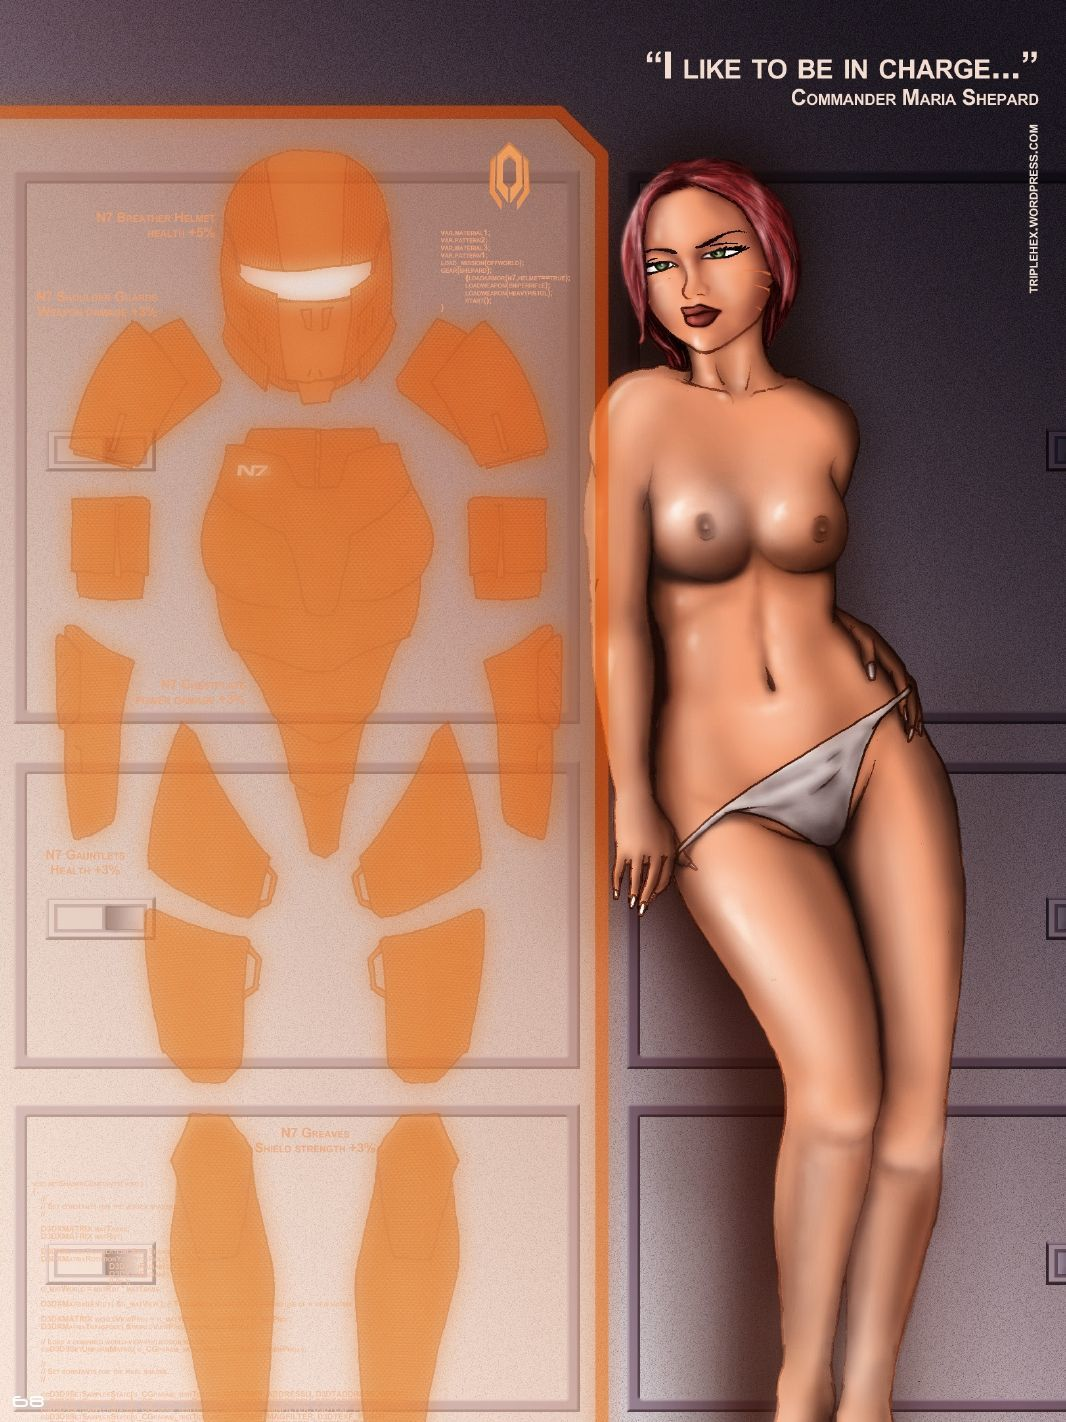 FORNAX_The_galaxys_finest_xenophilia_(Mass_Effect) comix_58172.jpg